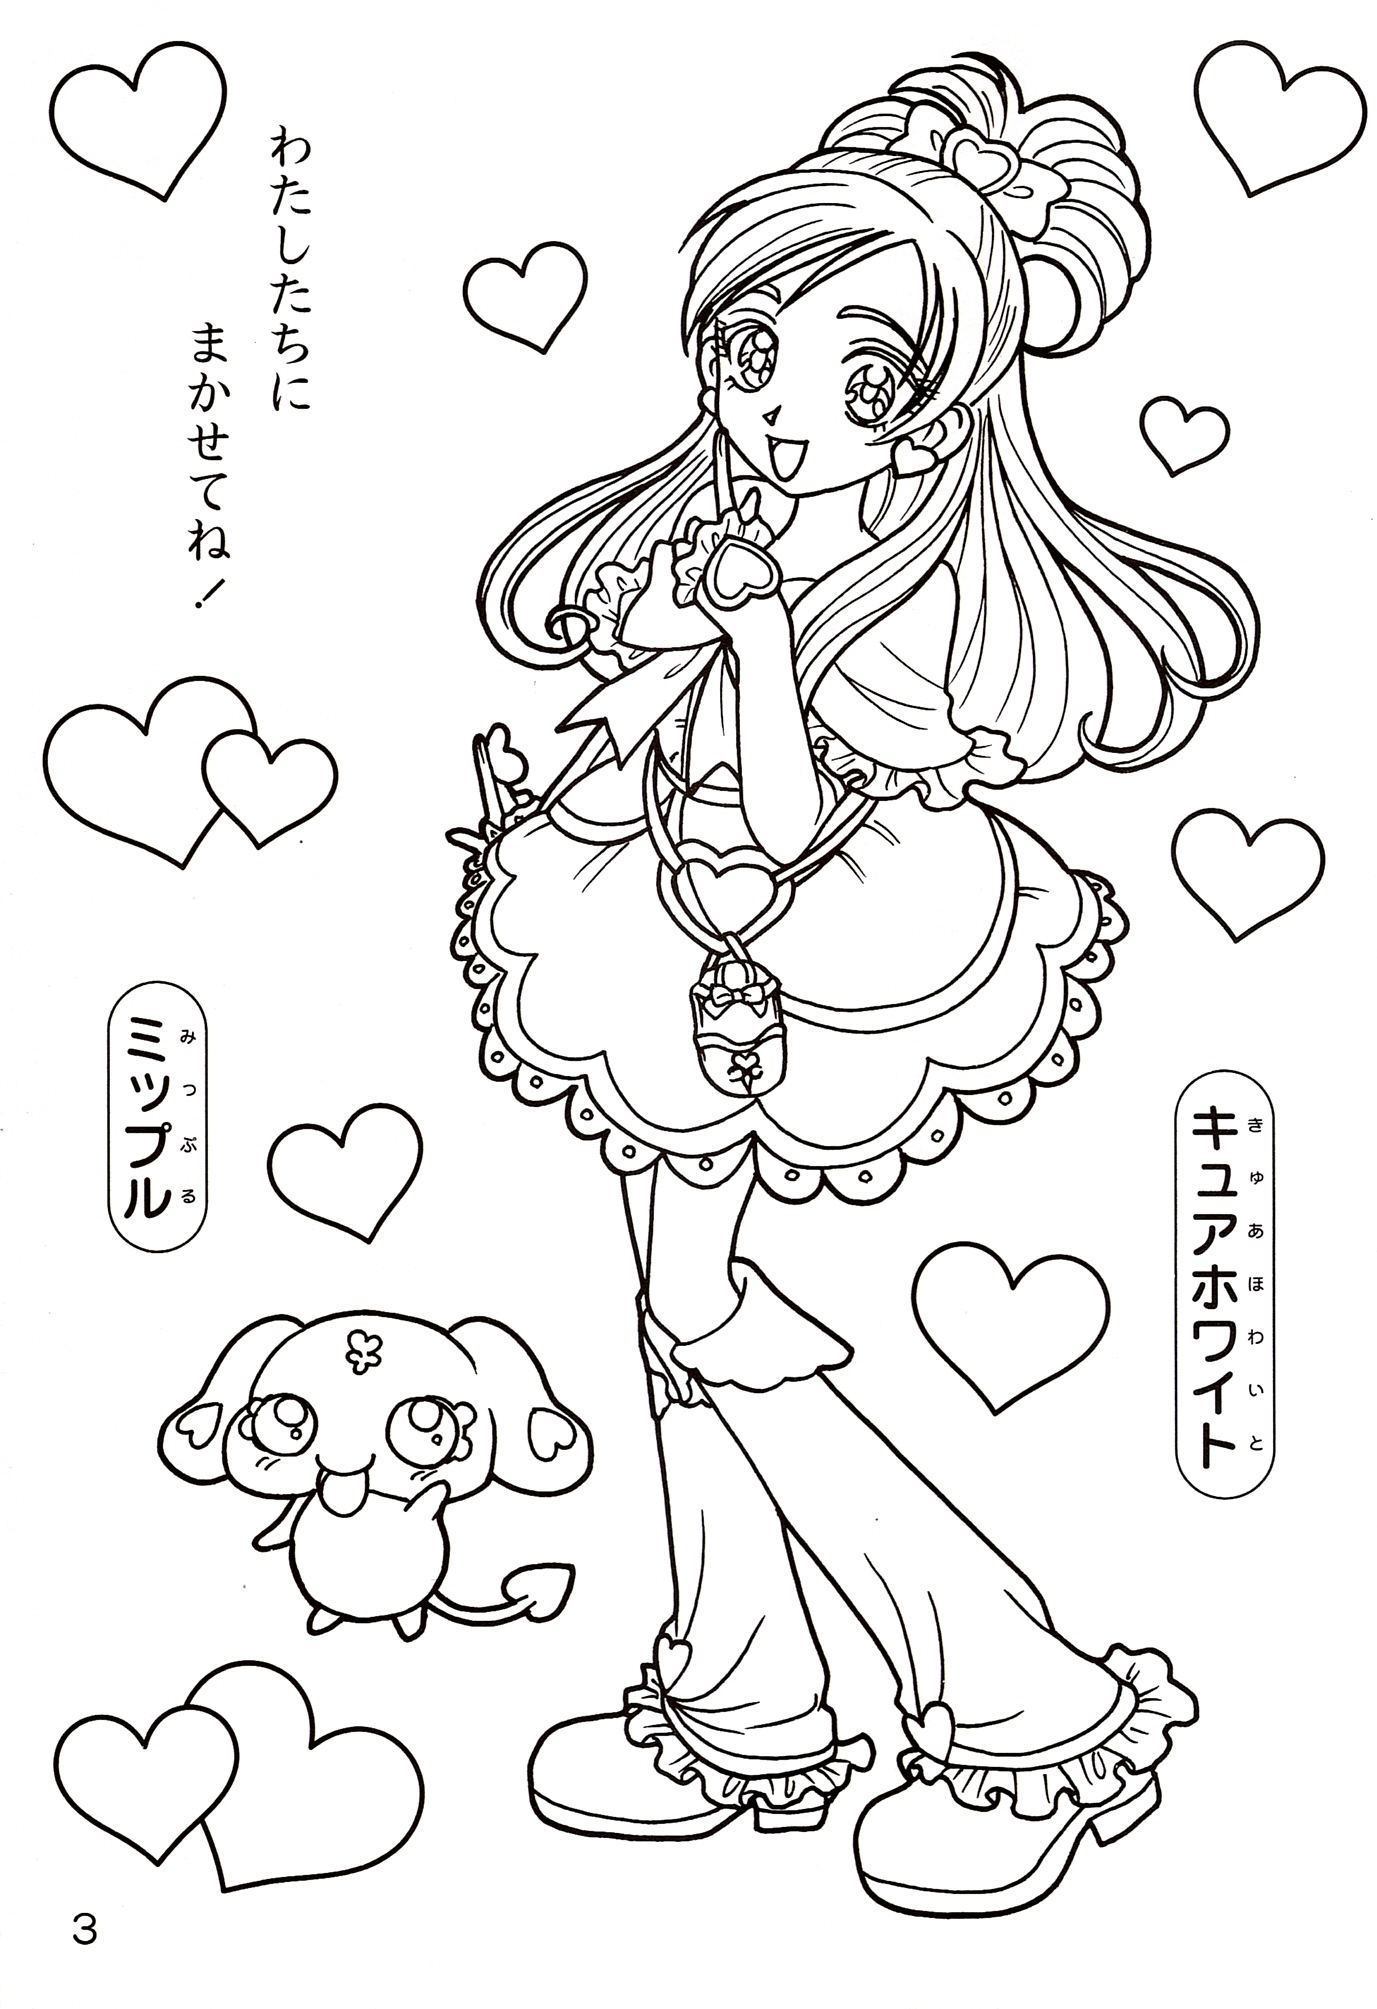 oasidelleanime precure coloring pages - photo #5